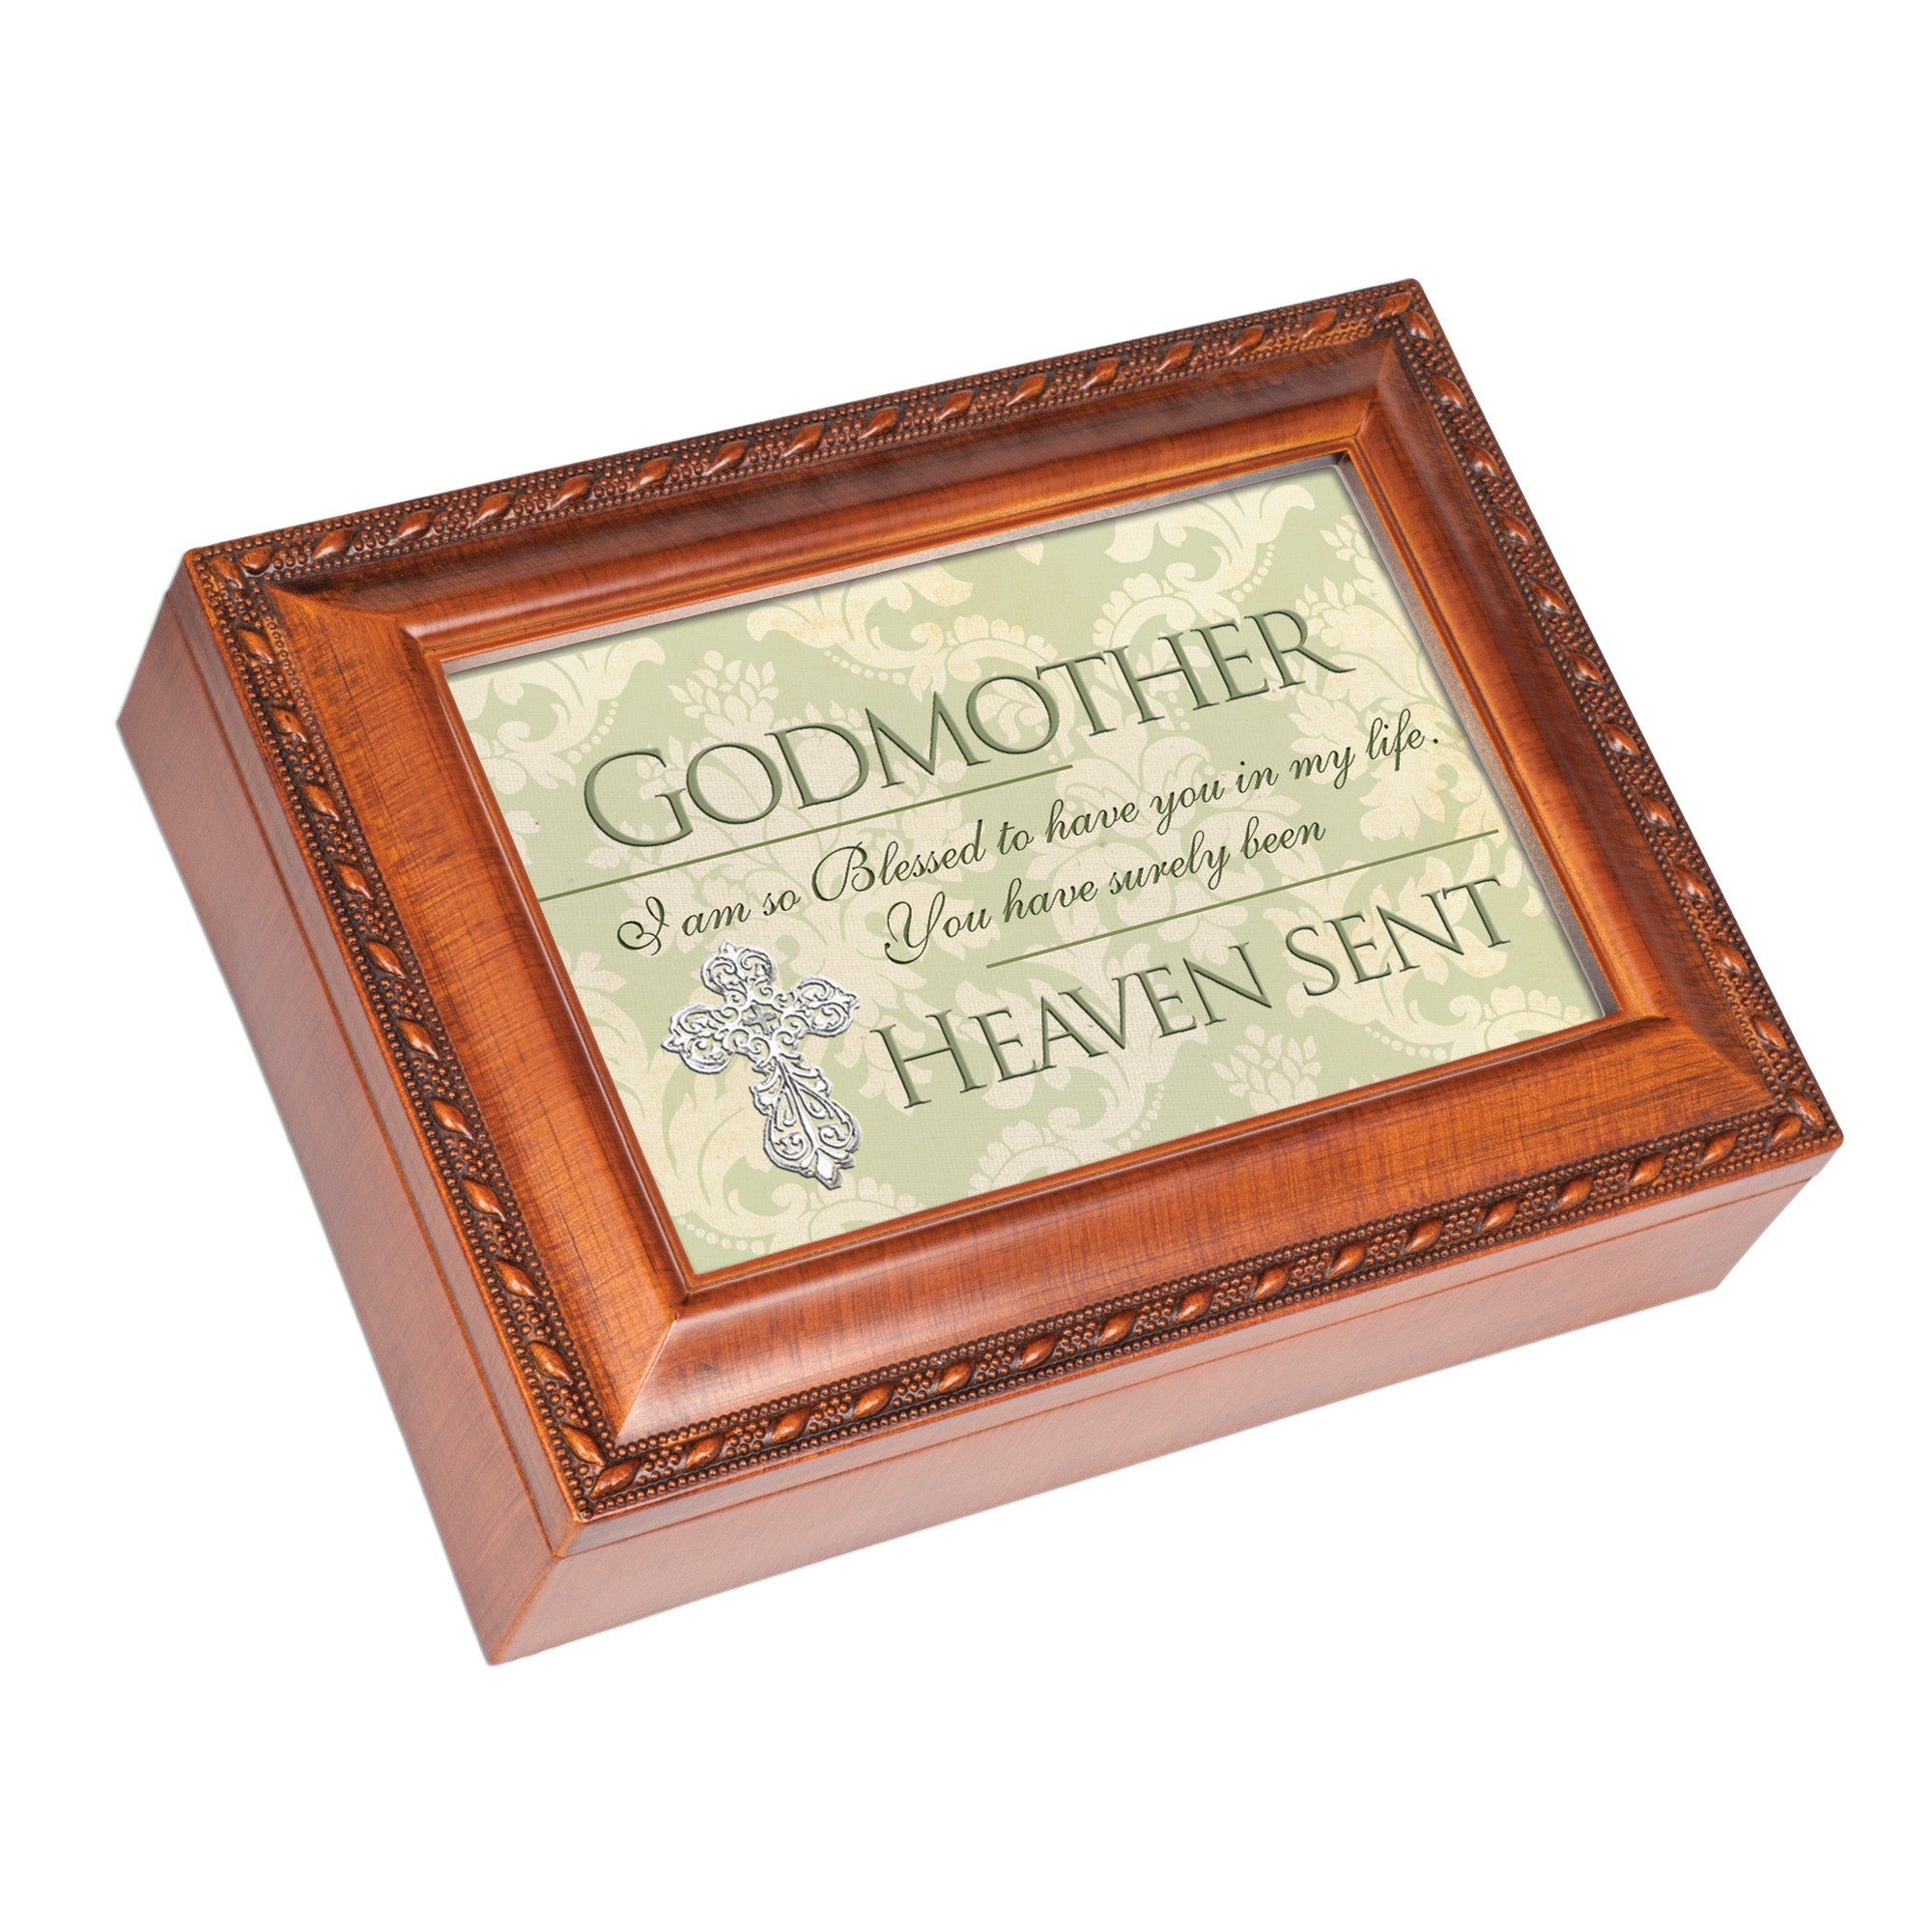 GODMOTHER MUSIC BOX